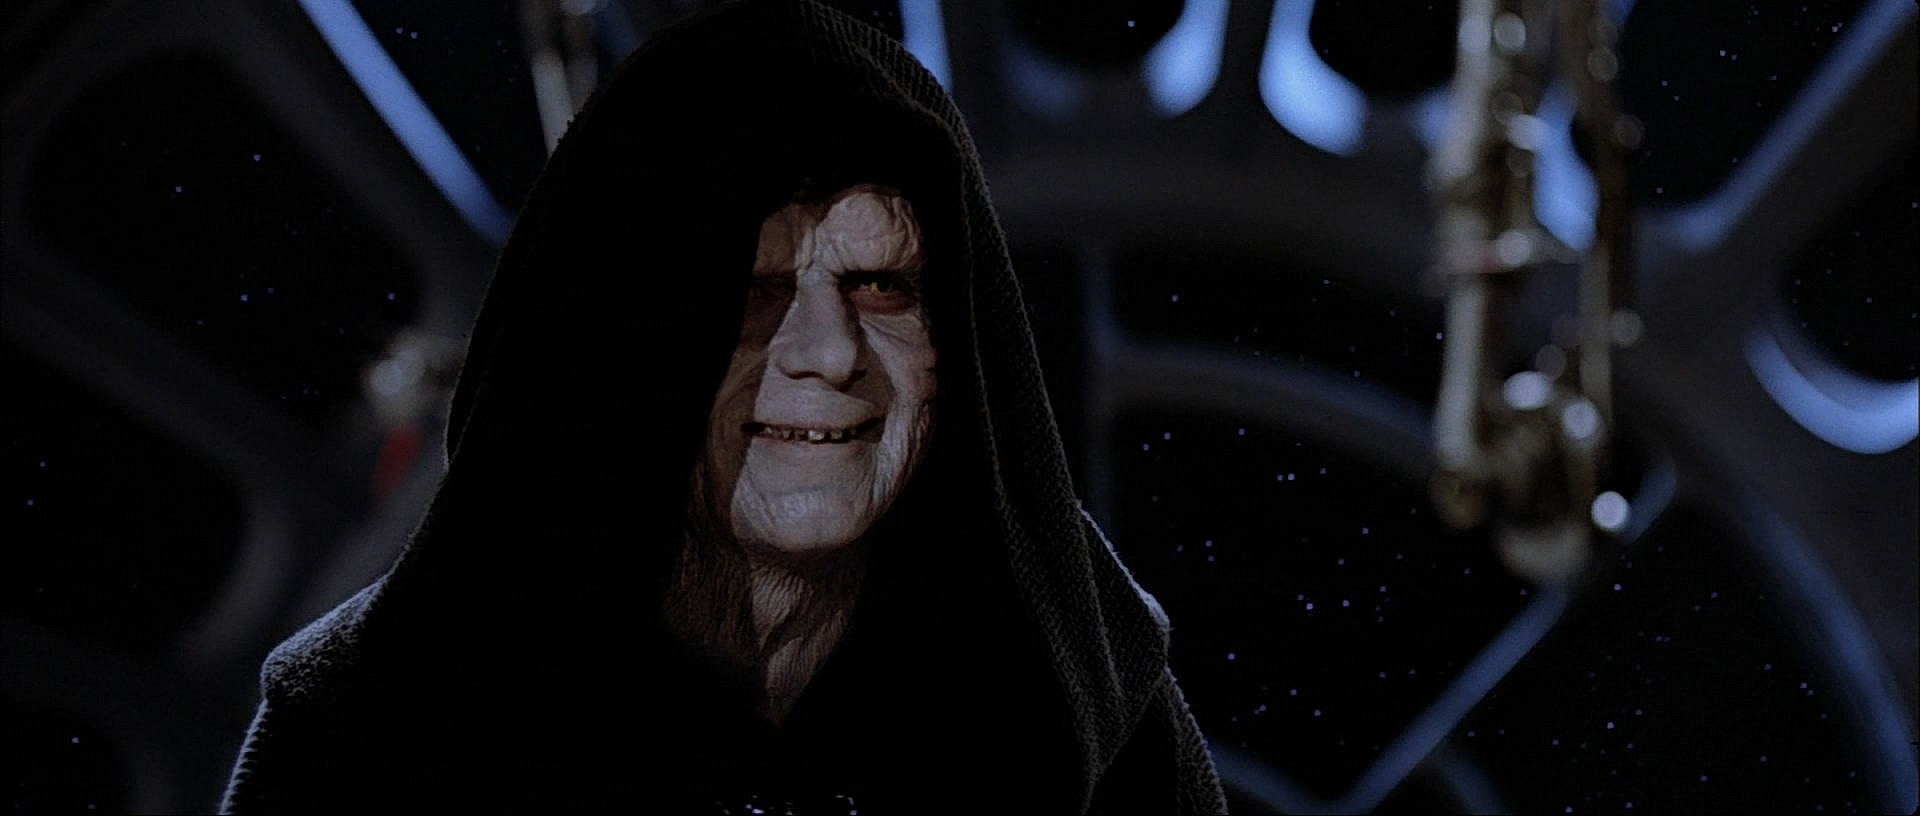 http://dontforgetatowel.com/wp-content/uploads/2014/10/palps-smile-finally-we-know-emperor-palpatine-s-real-name.jpeg